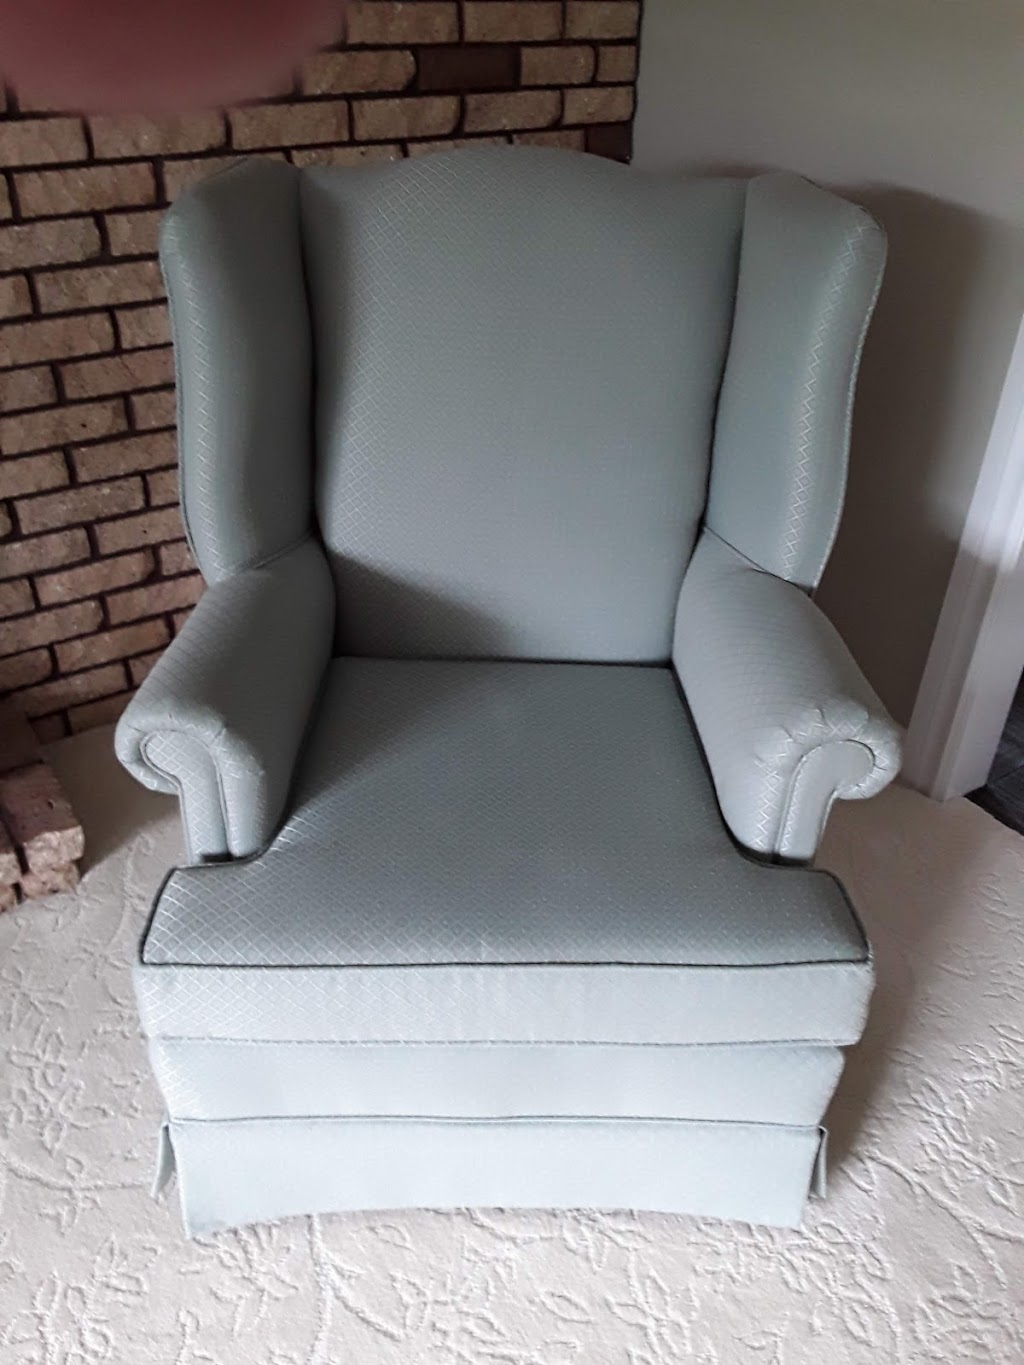 Jordans Clearance Centre   furniture store   9818 Main St, Canning, NS B0P 1H0, Canada   9025823350 OR +1 902-582-3350